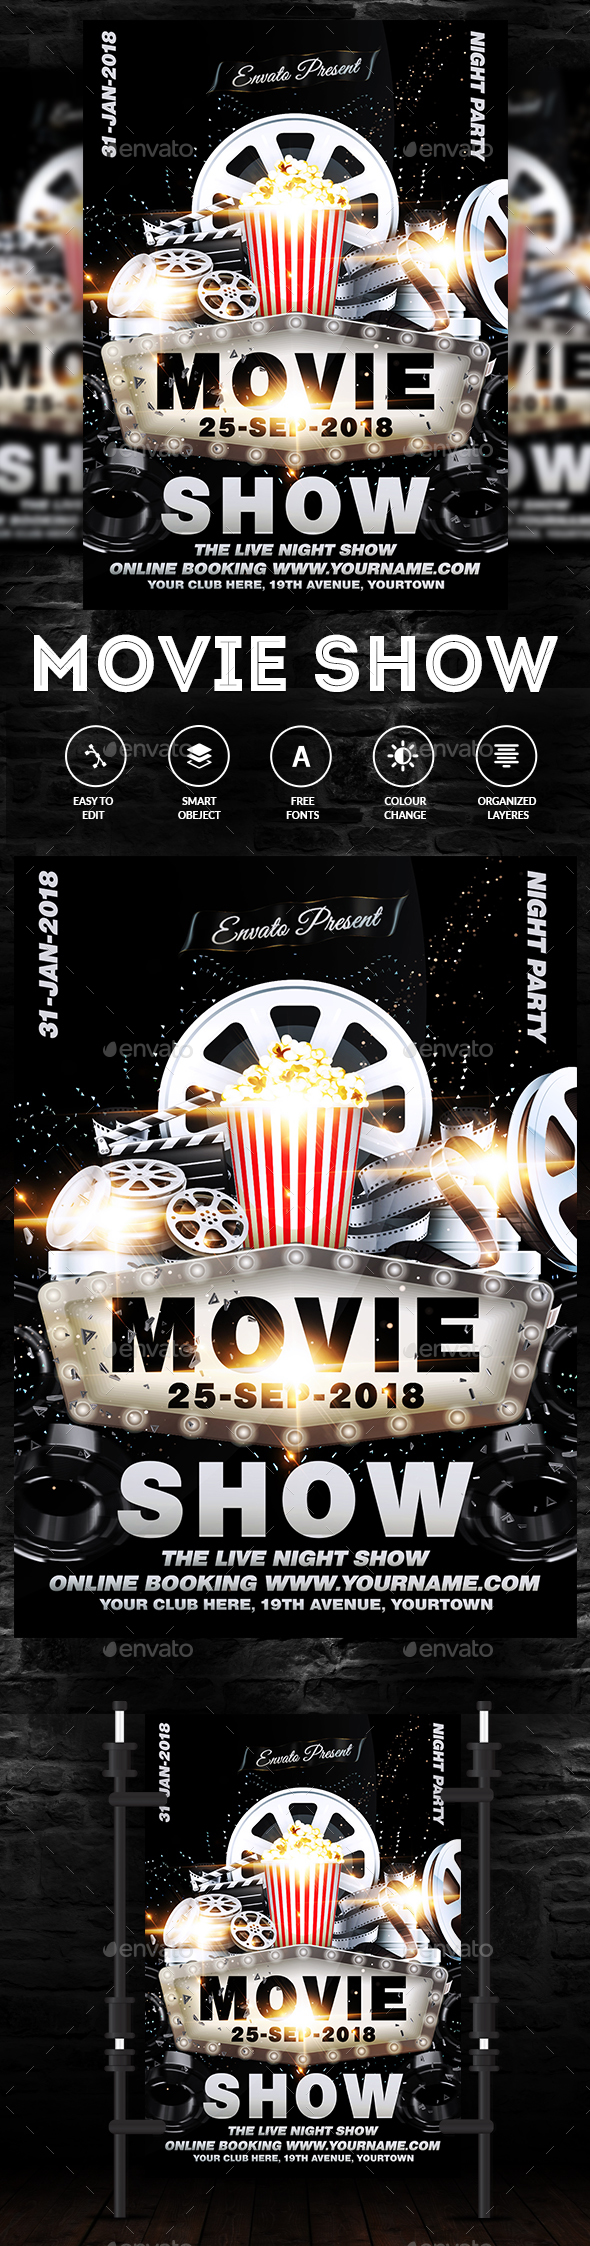 Movie Show Flyer - Clubs & Parties Events